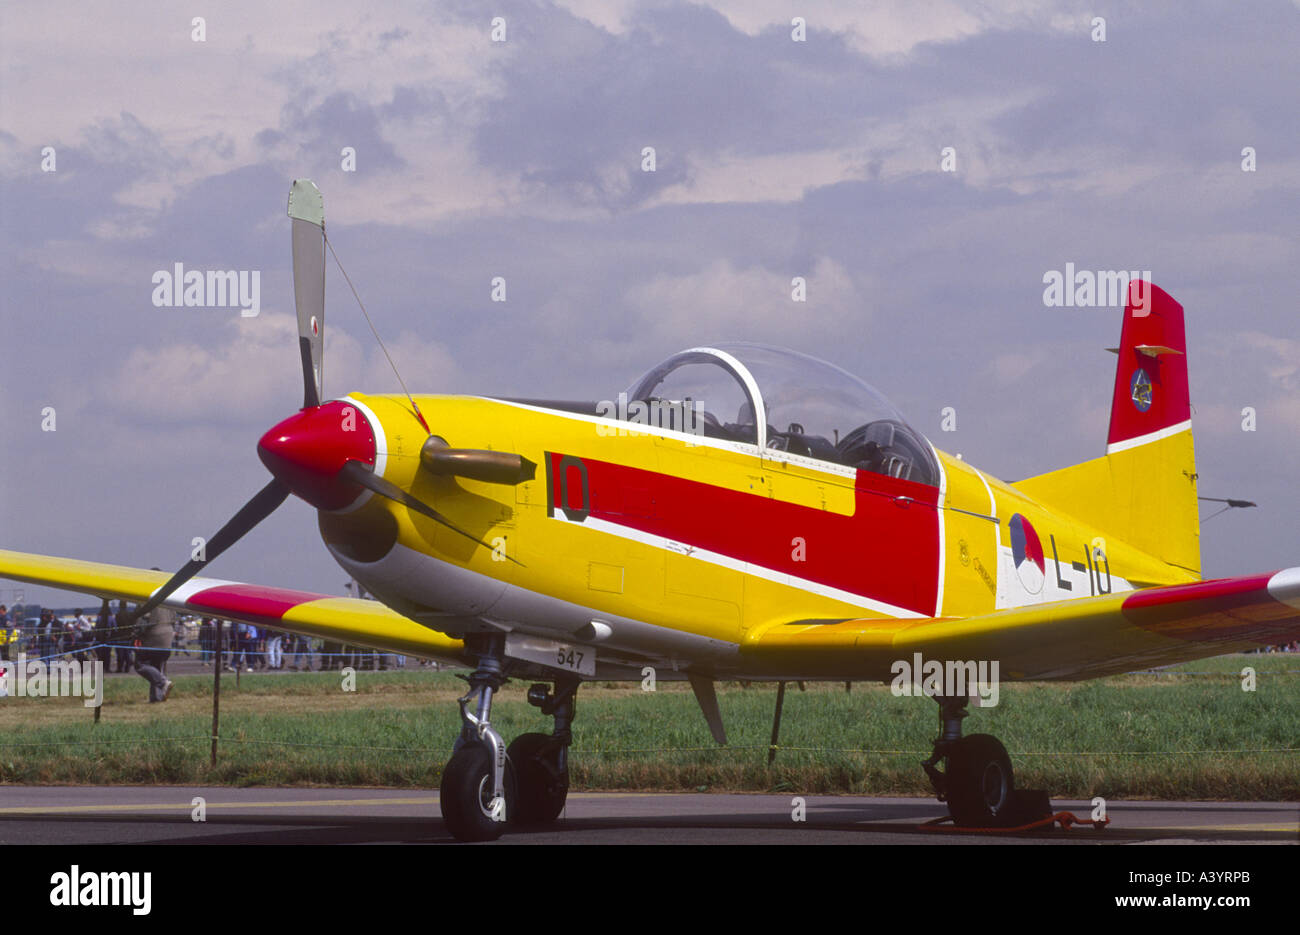 Pilatus PC-7 Turbo painted High Visibility Yellow with Red and White Striping.   GAV 2254-229 Stock Photo